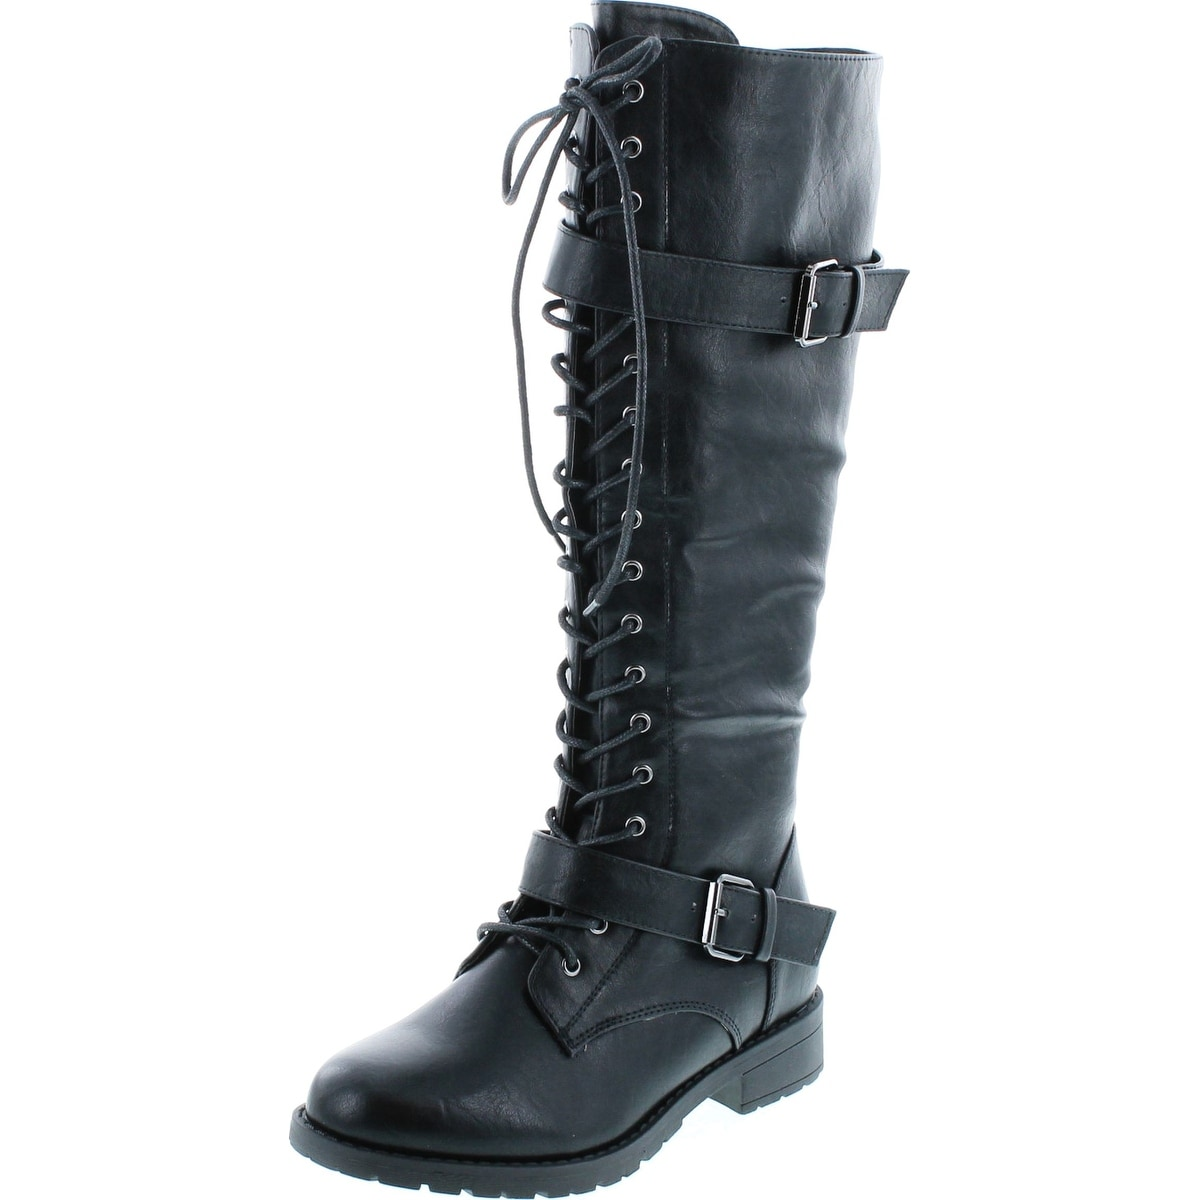 Womens Knee High Boots Lace Up